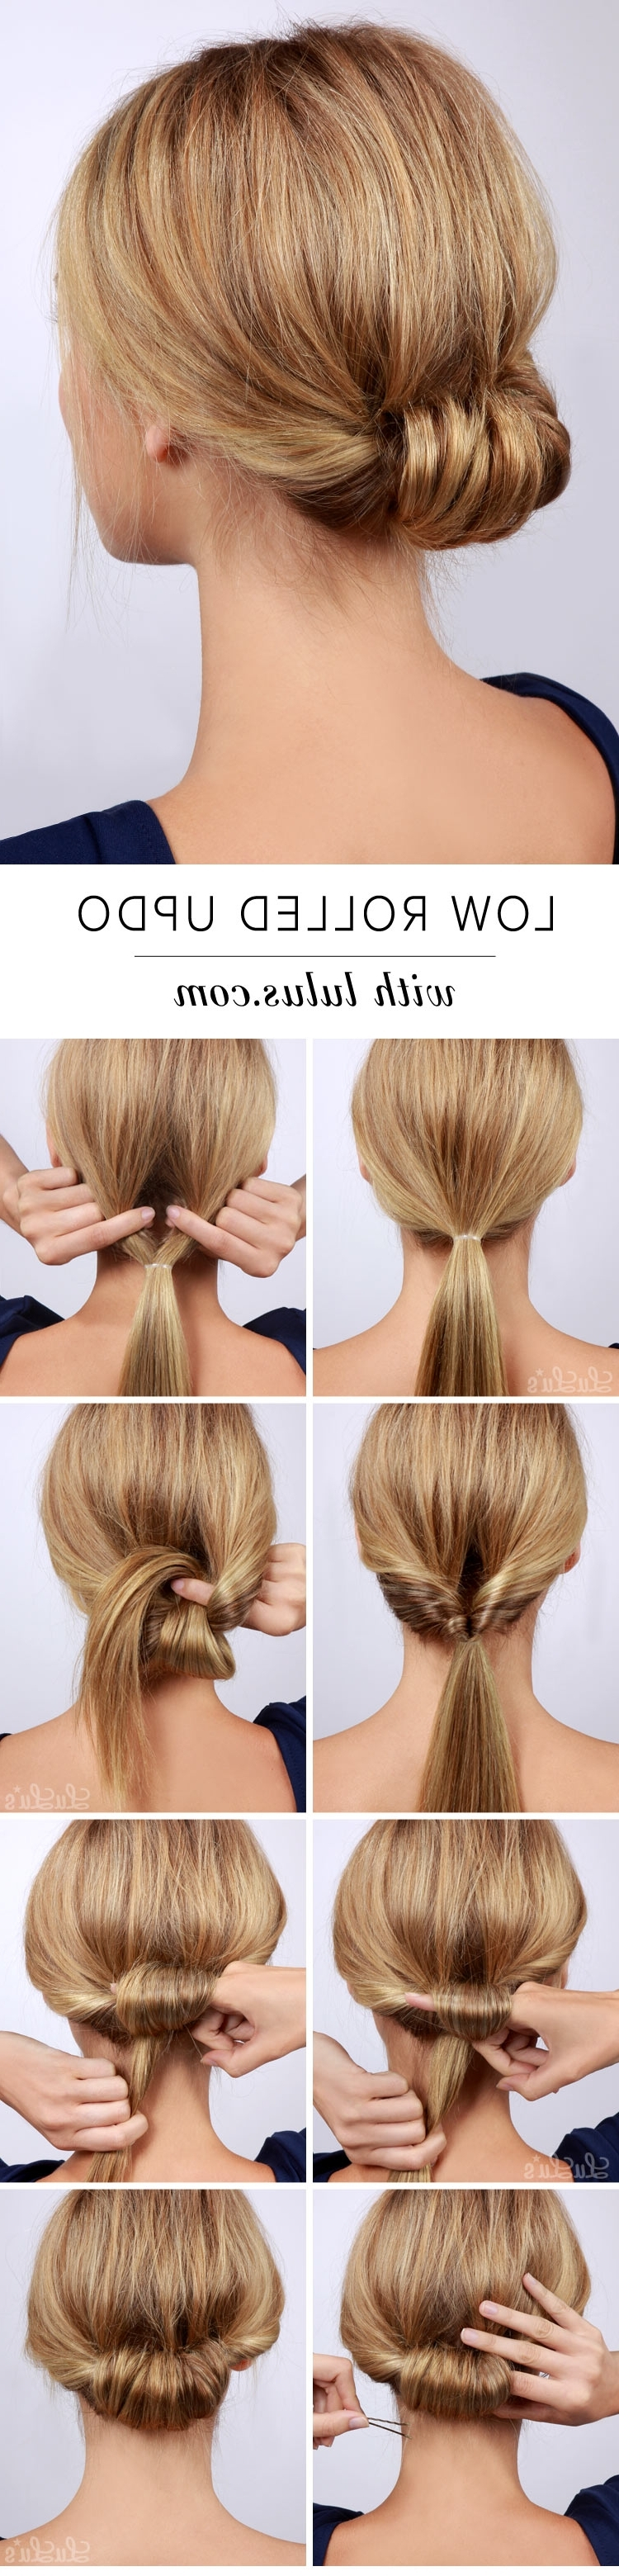 Lulus How To: Low Rolled Updo Hair Tutorial – Lulus Fashion Blog With Long Hair Updo Hairstyles For Work (View 14 of 15)